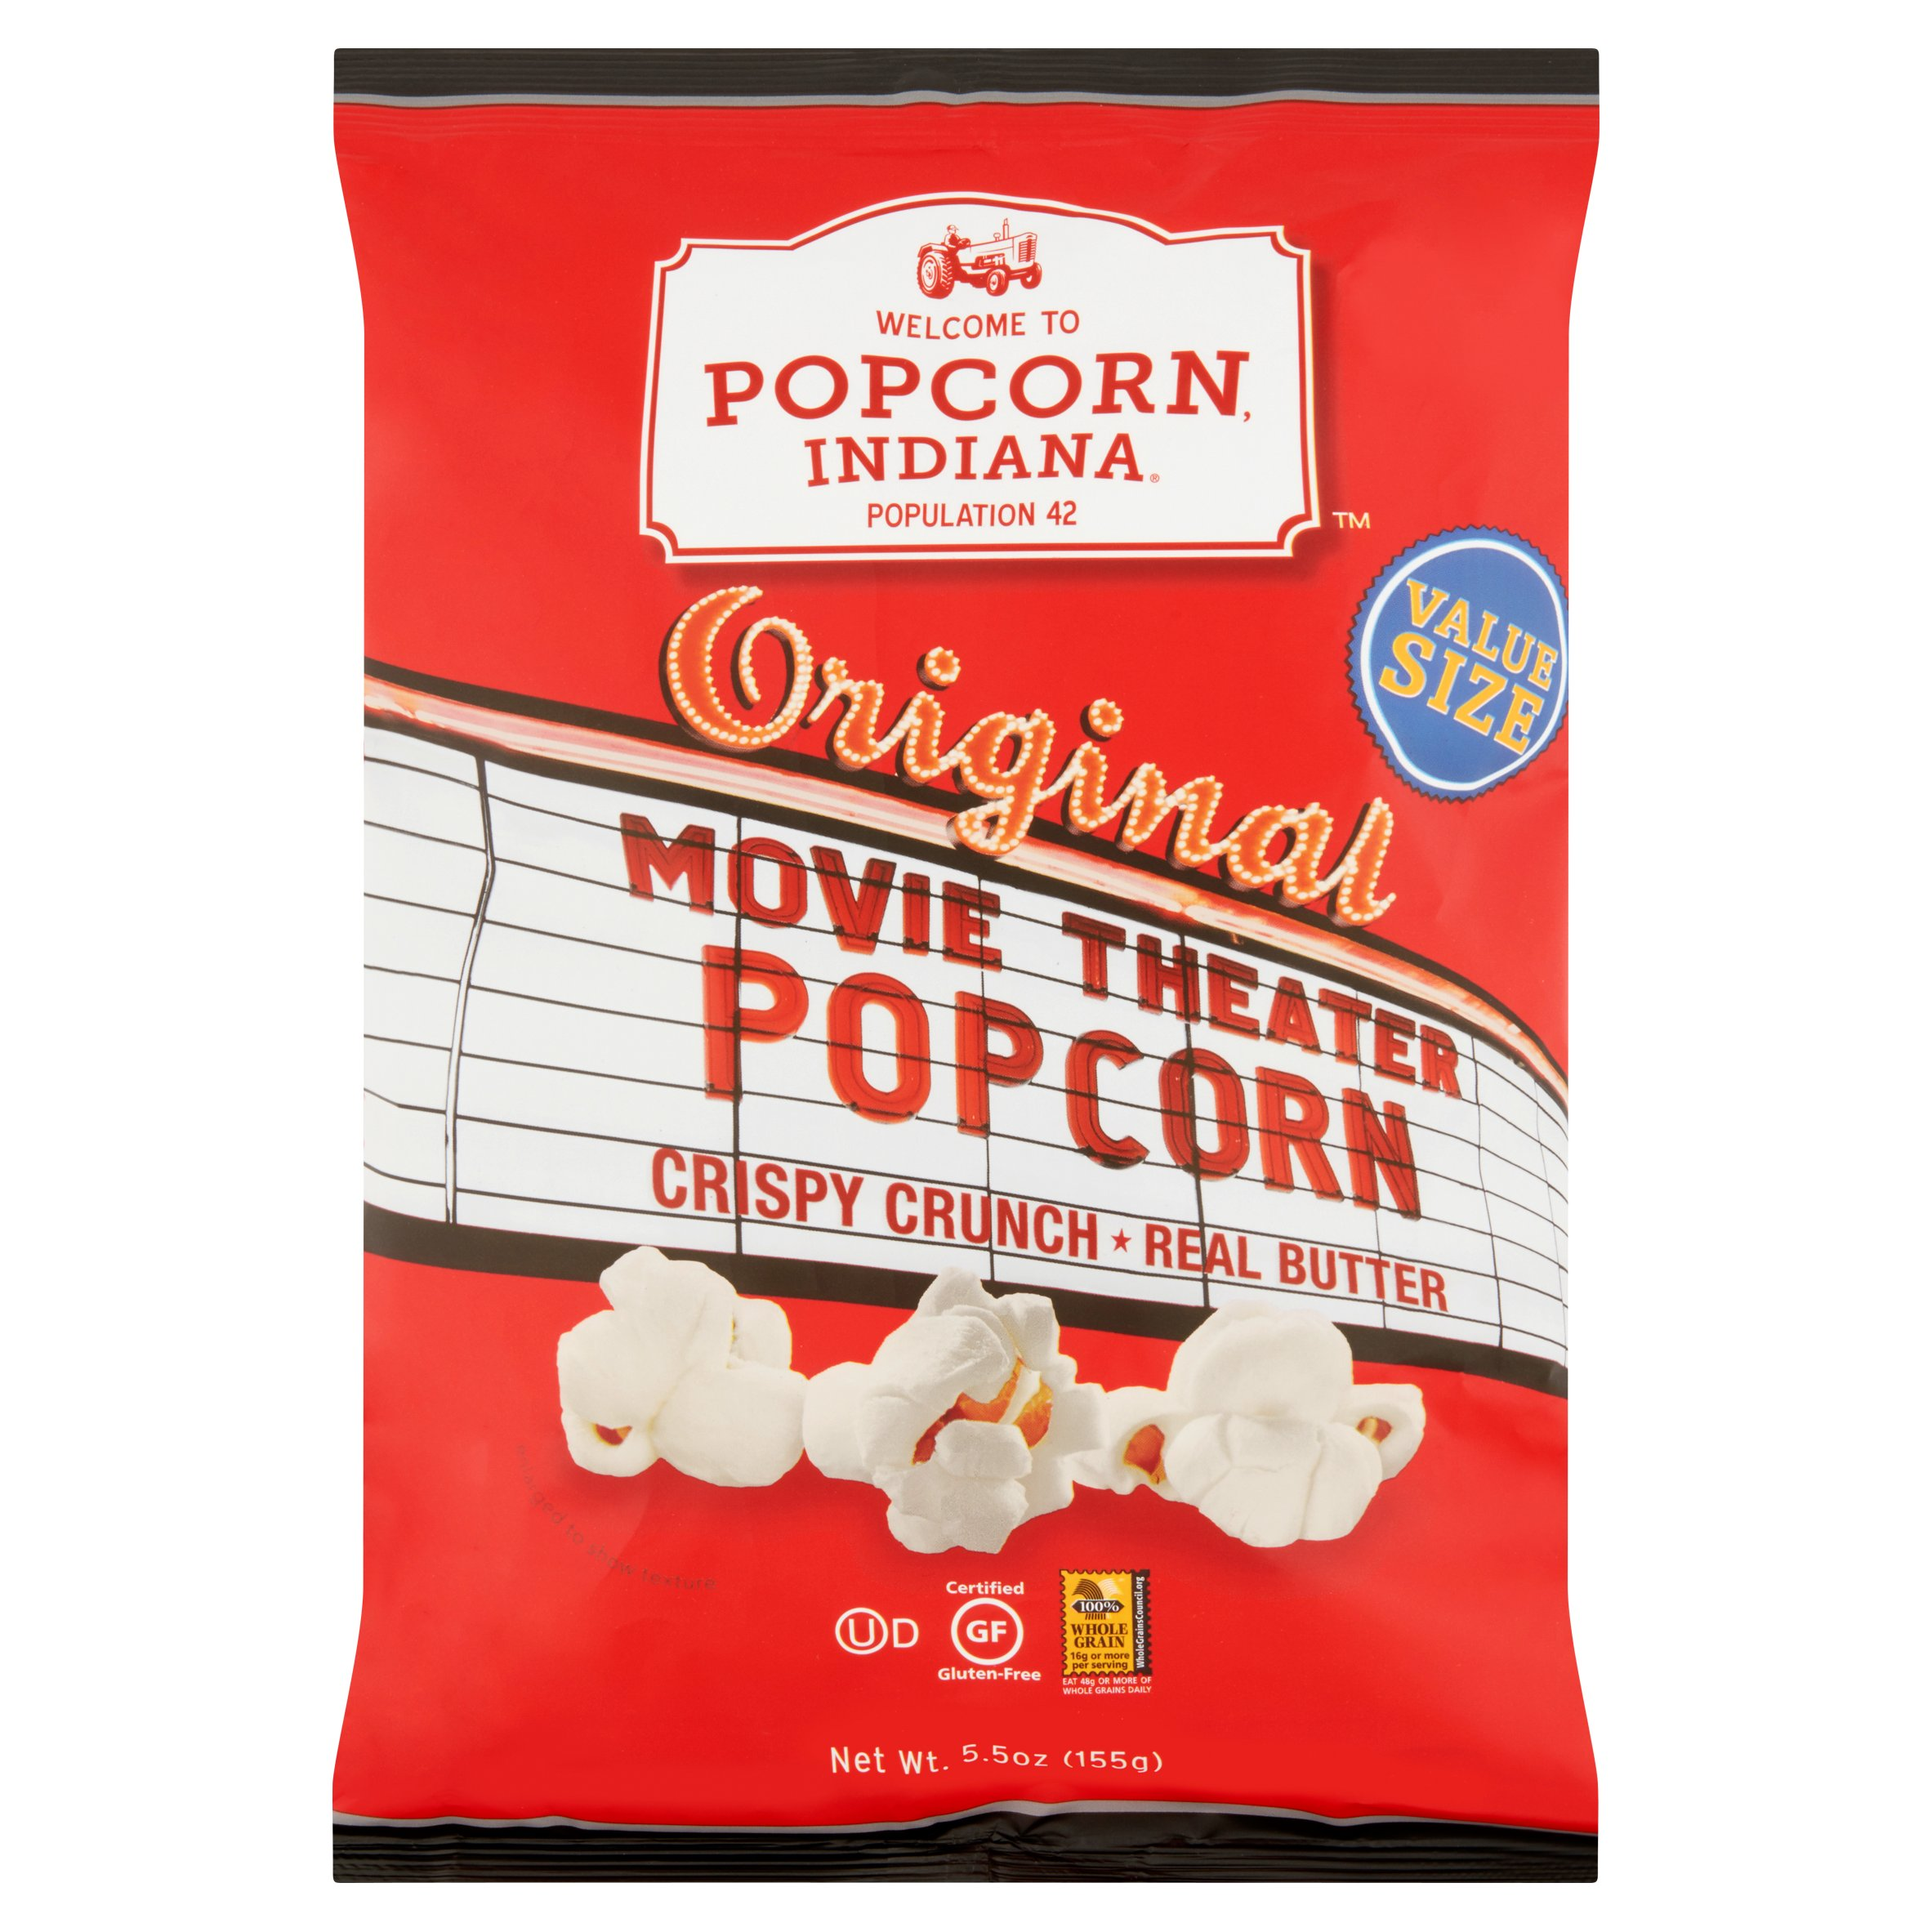 Calories In Bag Of Kirkland Microwave Popcorn The Art Of Mike Mignola